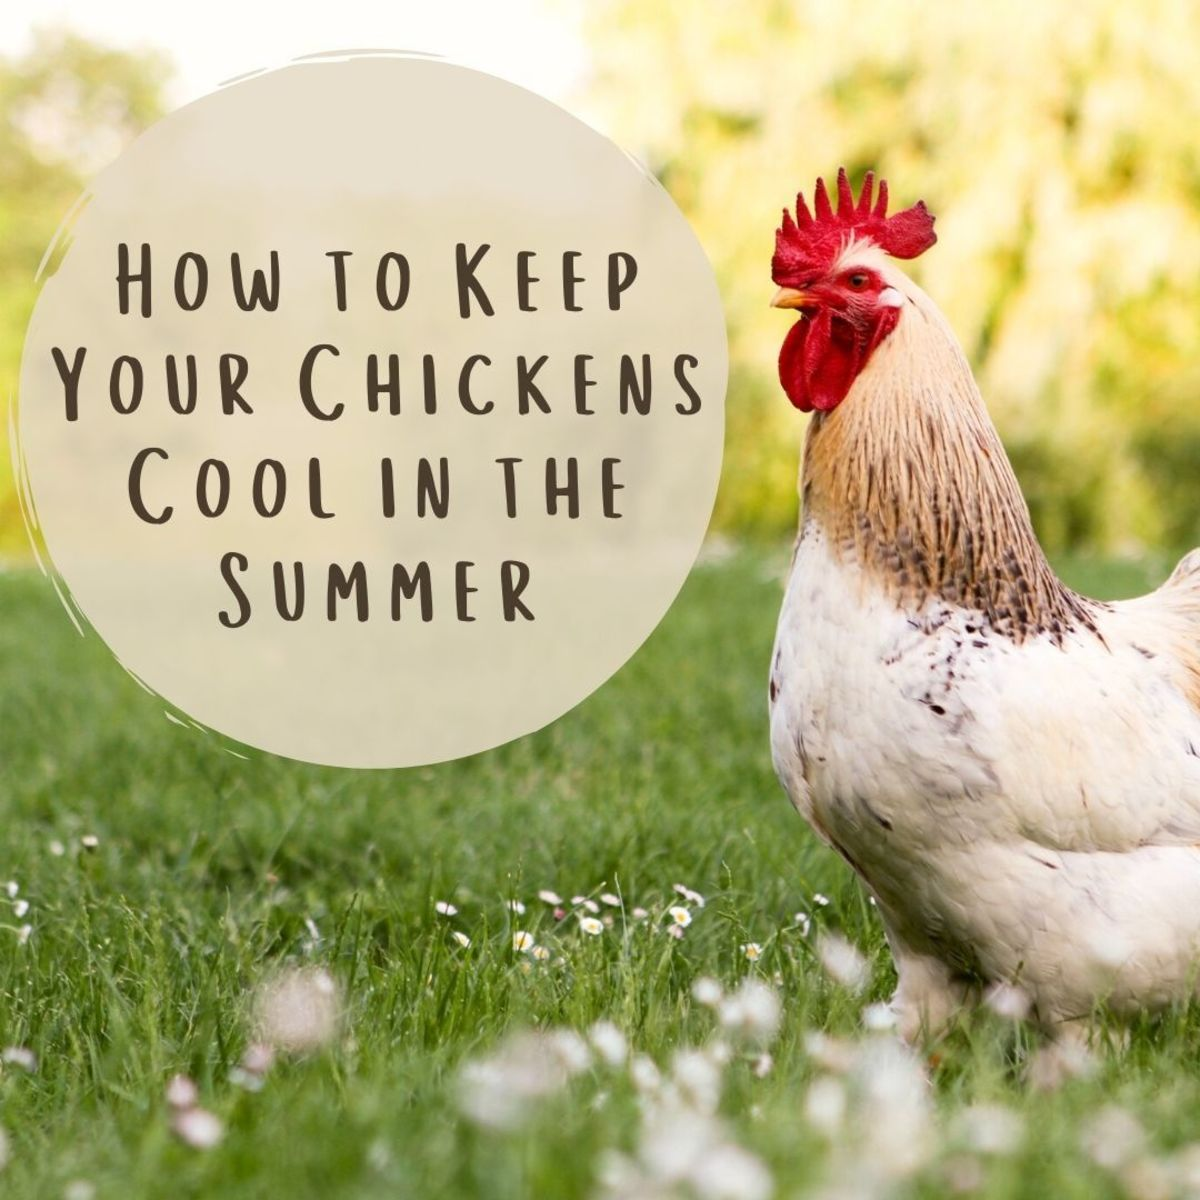 How to keep your chickens cool in the hot summer weather